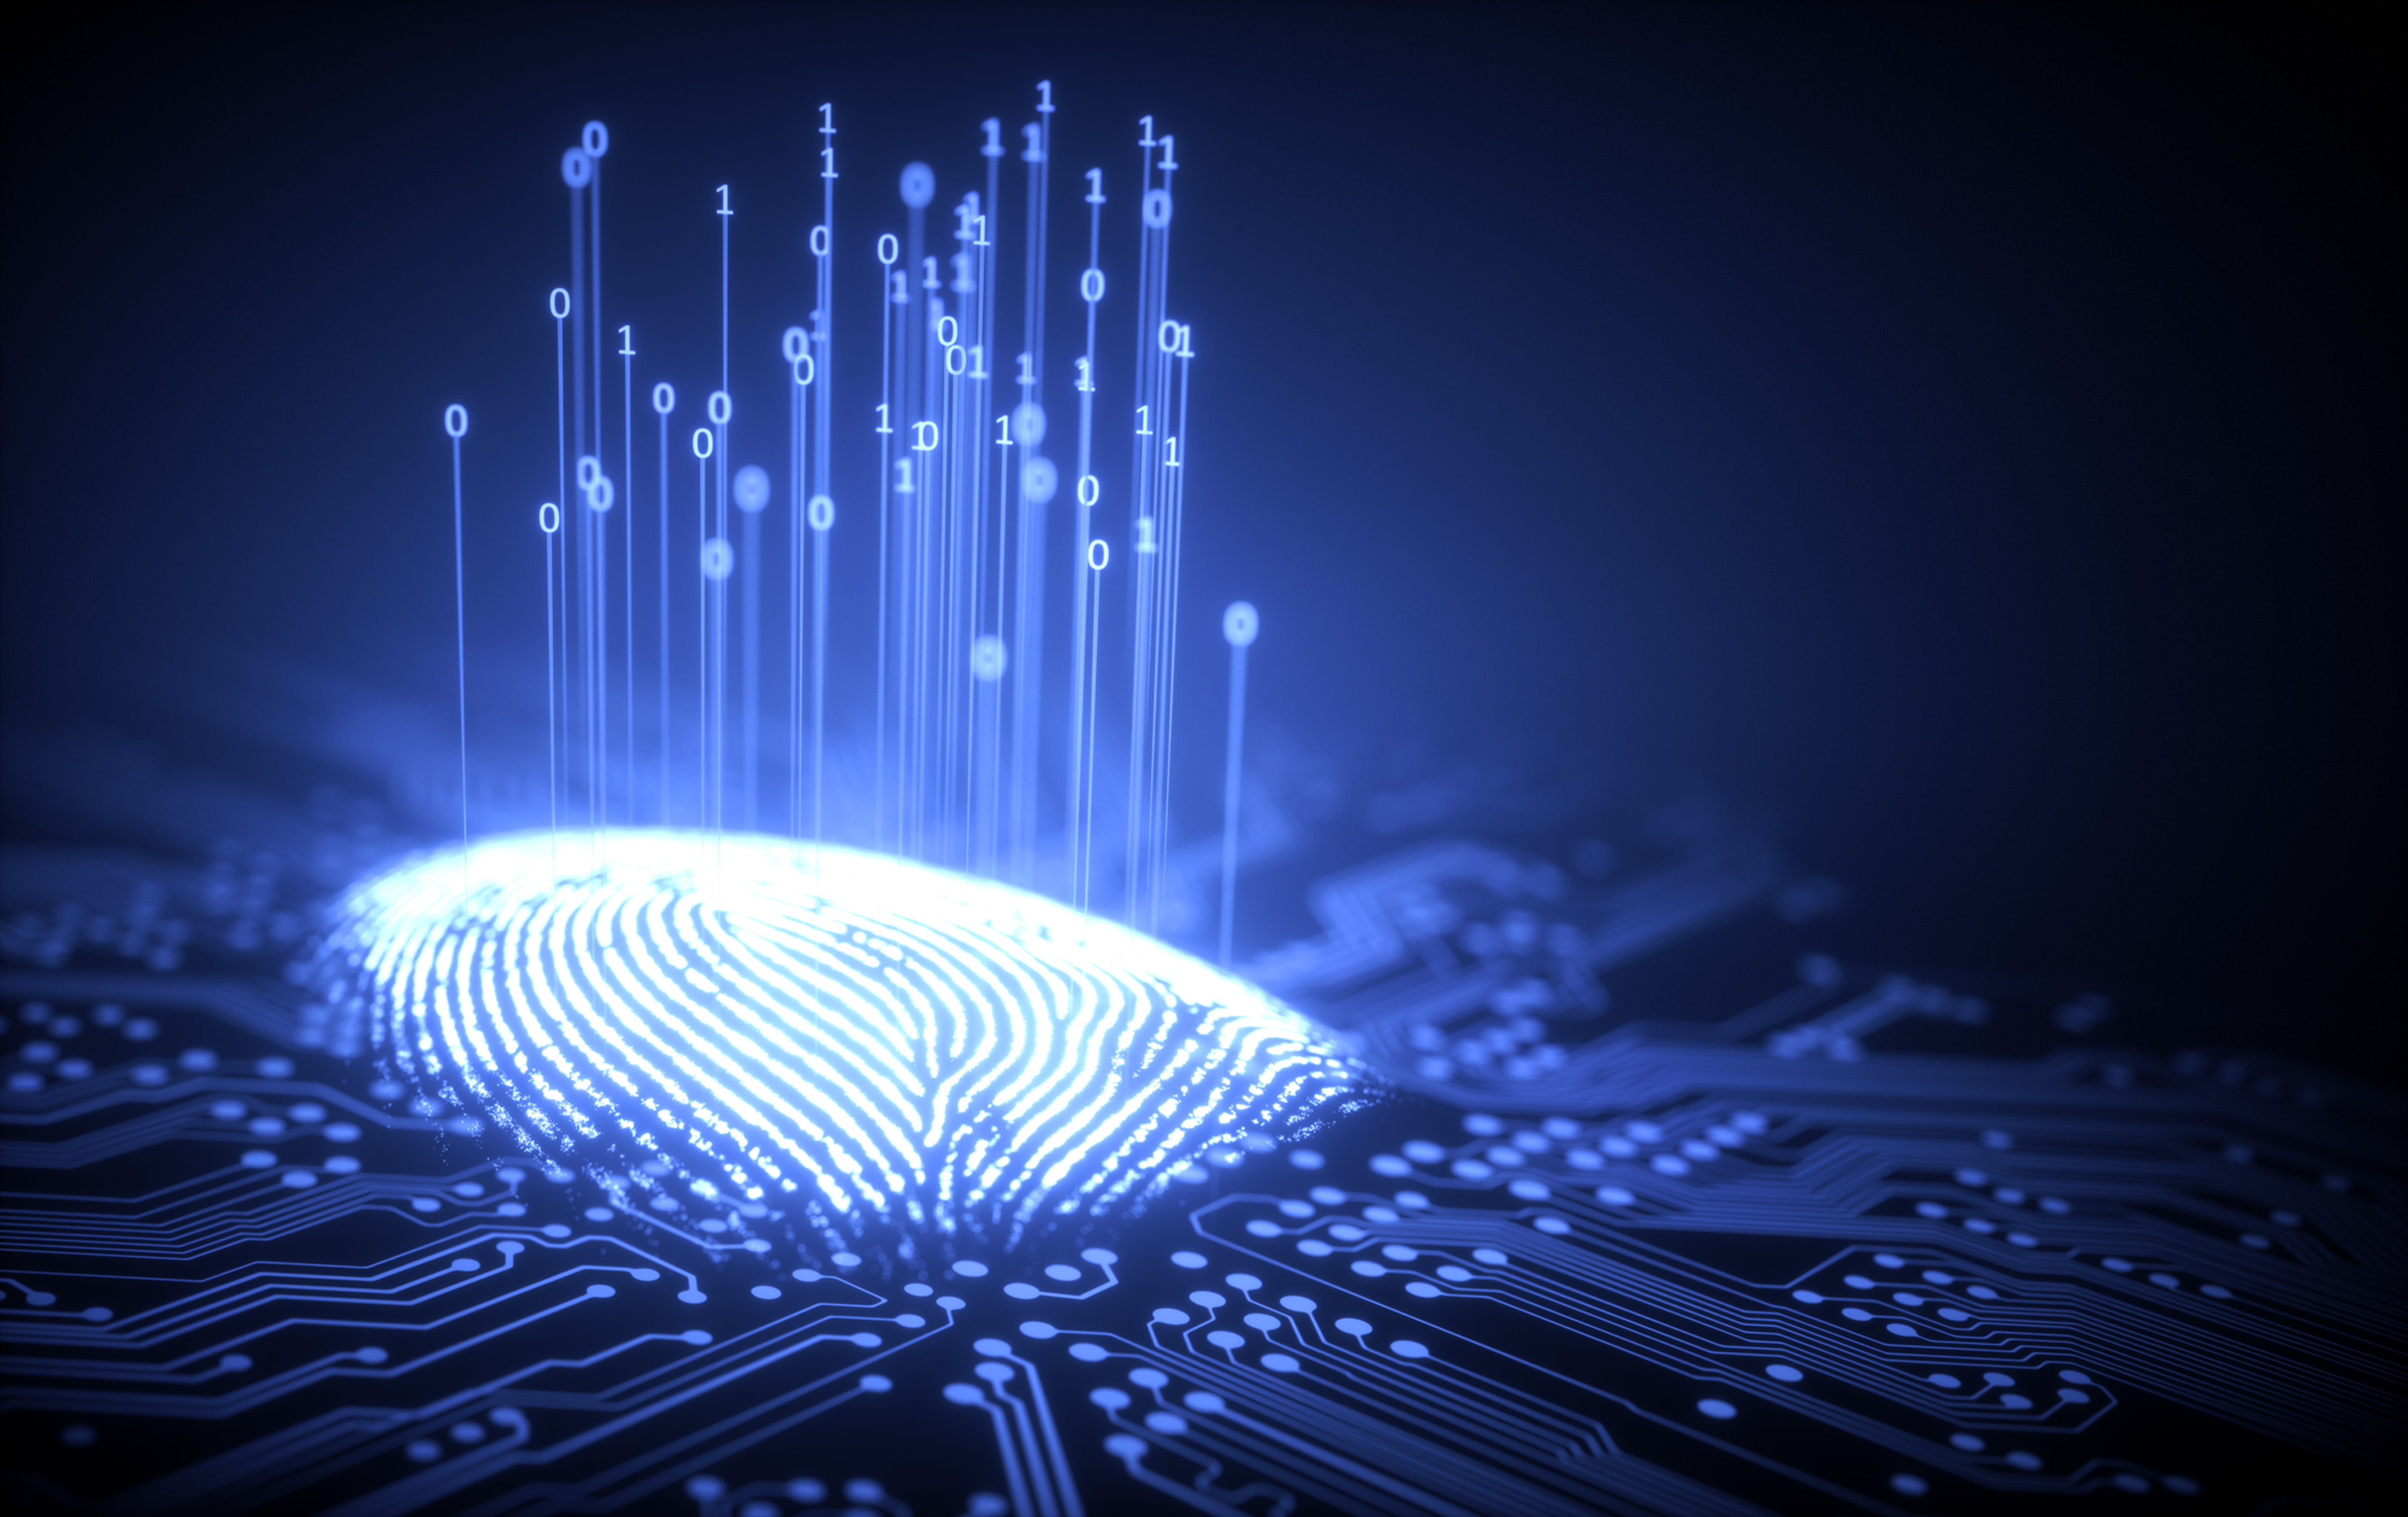 Fingerprint Capture and Submissions